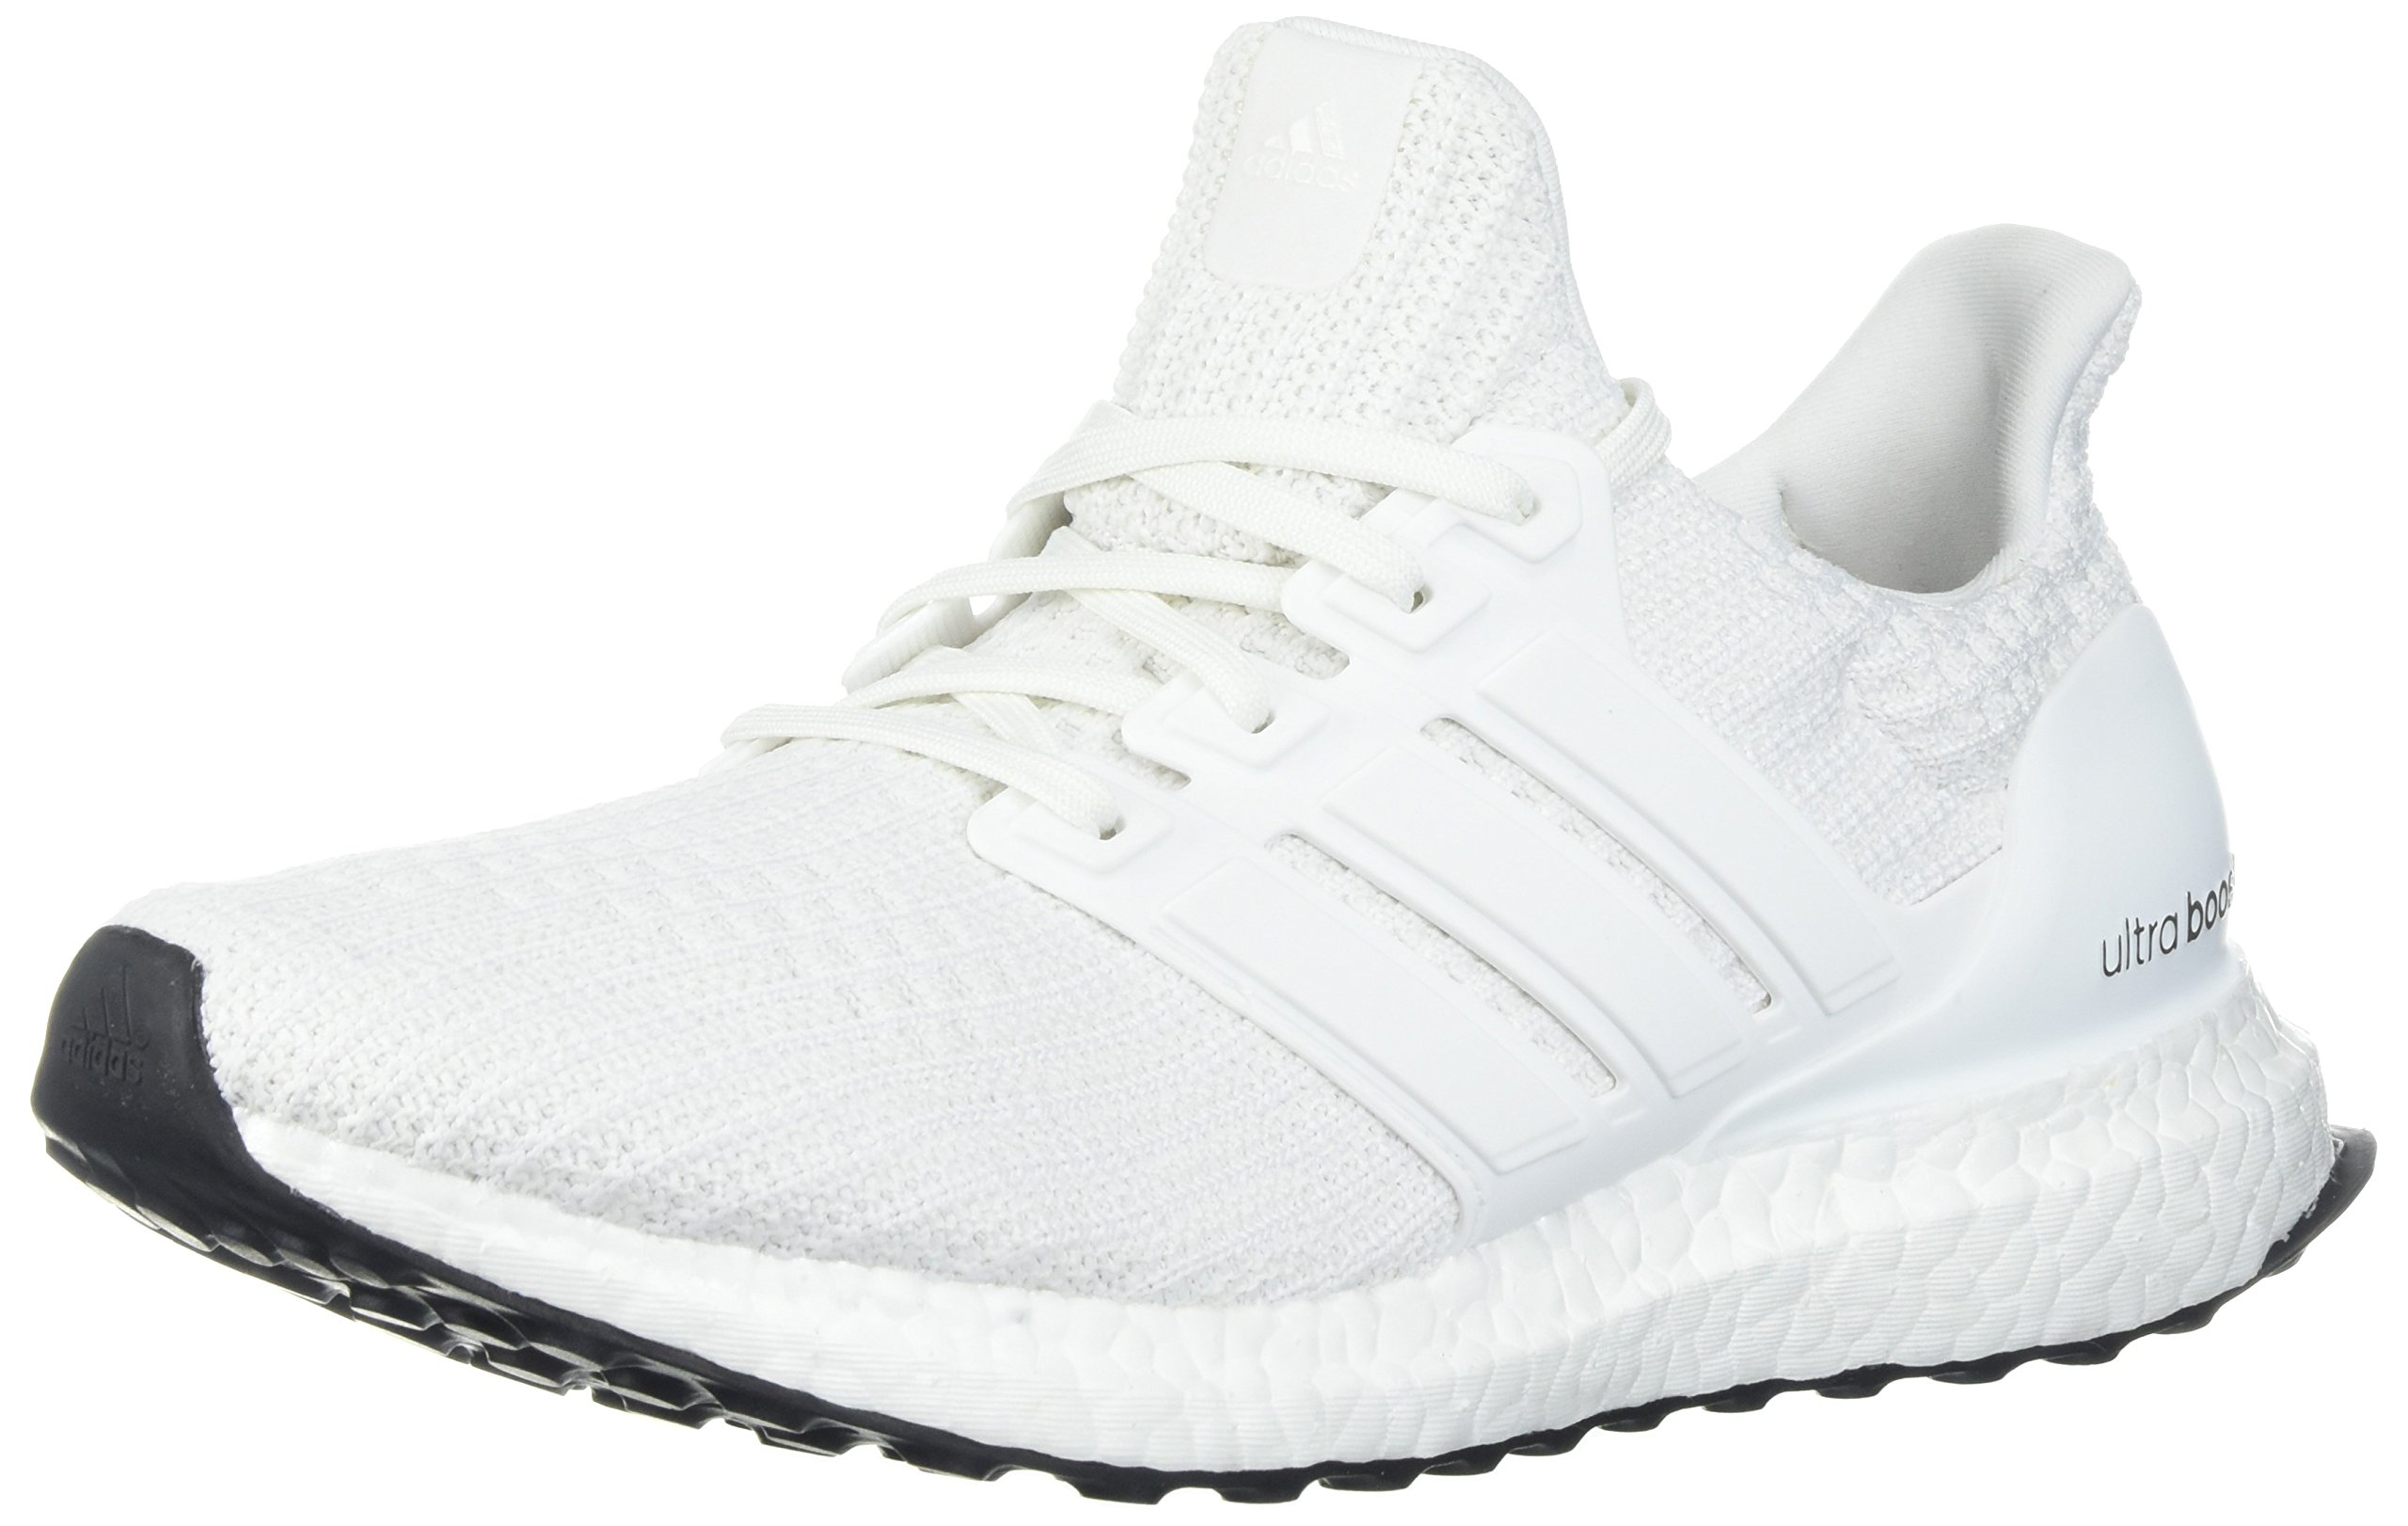 adidas Men's Ultraboost Road Running Shoe, White/White/White, 6.5 M US by adidas (Image #1)